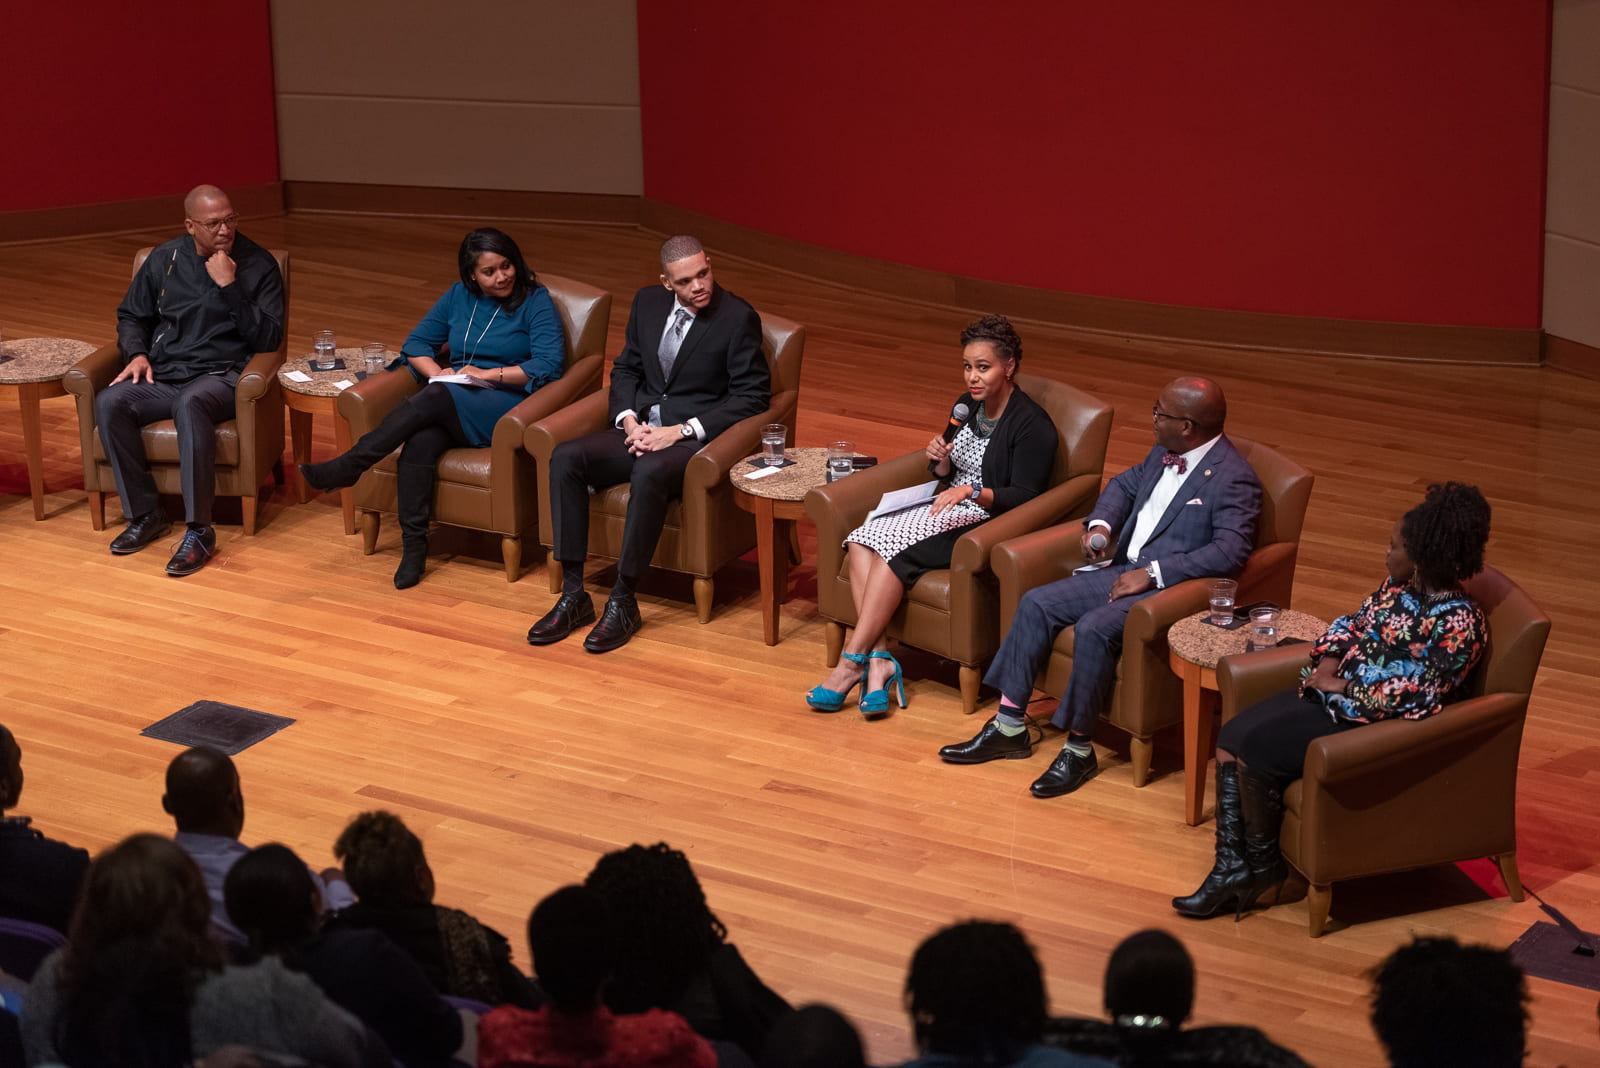 The featured panel members speak about their experiences. From left to right: Edward Jones, Charmaine Brown, Collin Mays, Tiara Dungy, Kim Nyoni, Akilah Wallace.